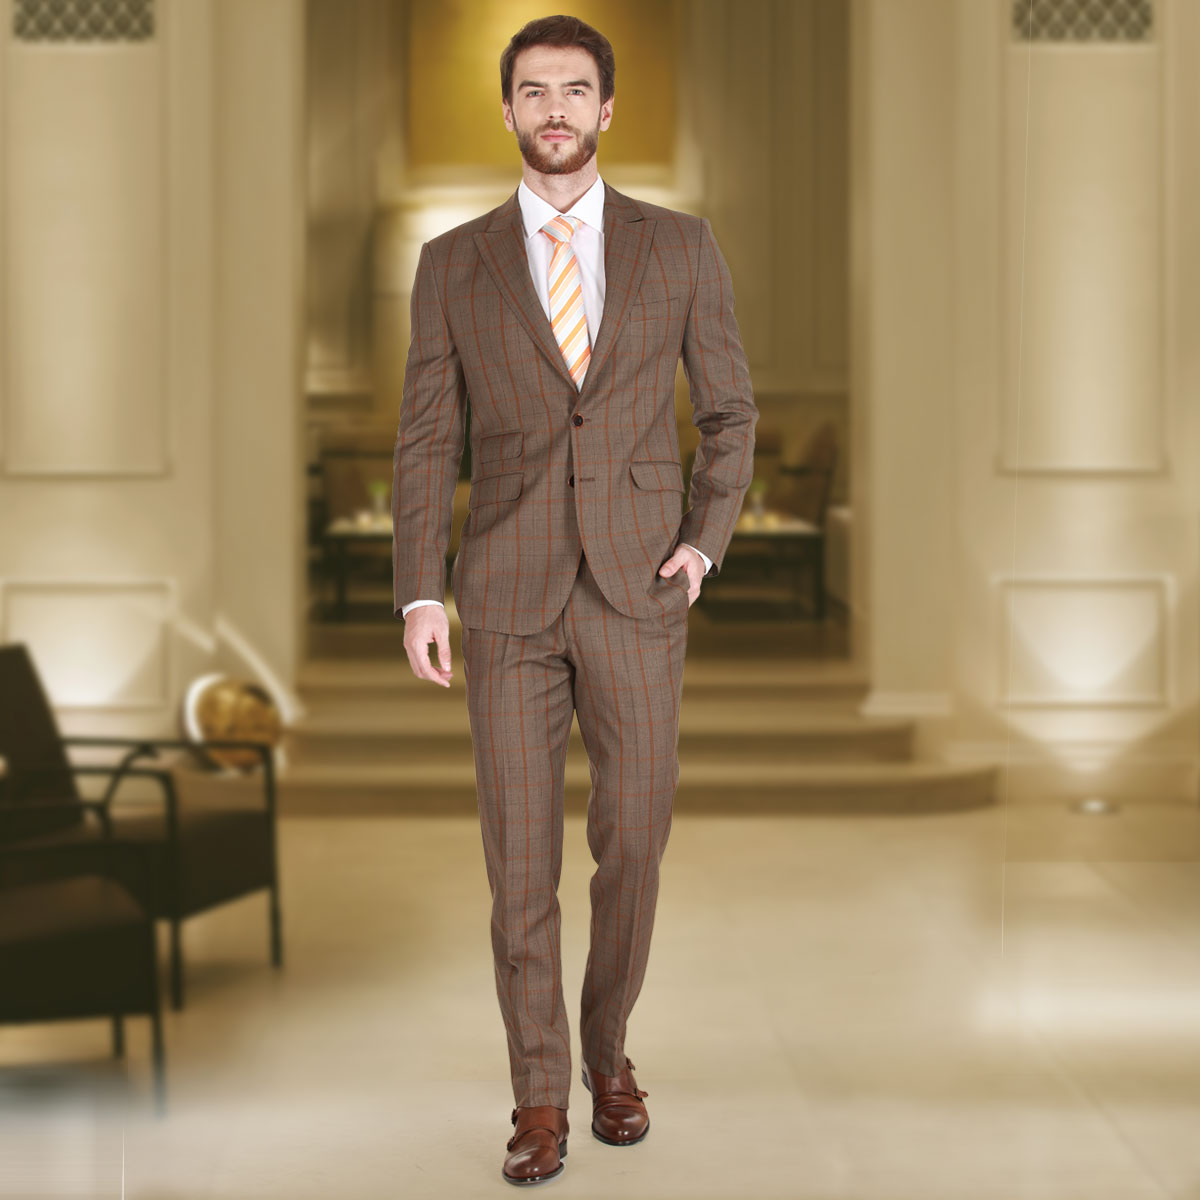 Rich Brown Suit - Premium Bespoke Suits Online. Men's Clothing ...